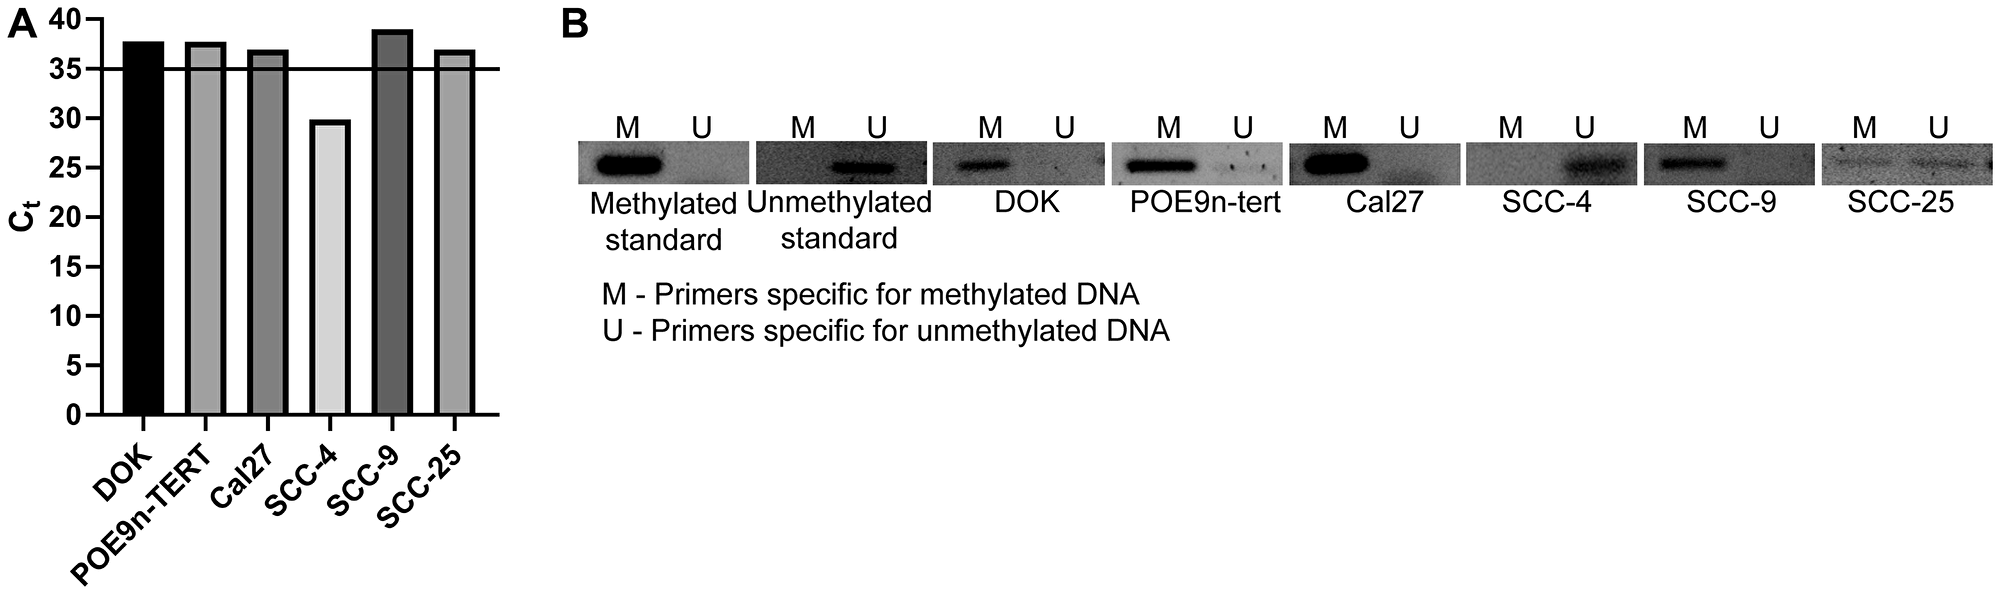 SMPD3 is methylated and its expression is undetected in a panel of oral dysplasia and cancer cell lines, except for SCC-4.